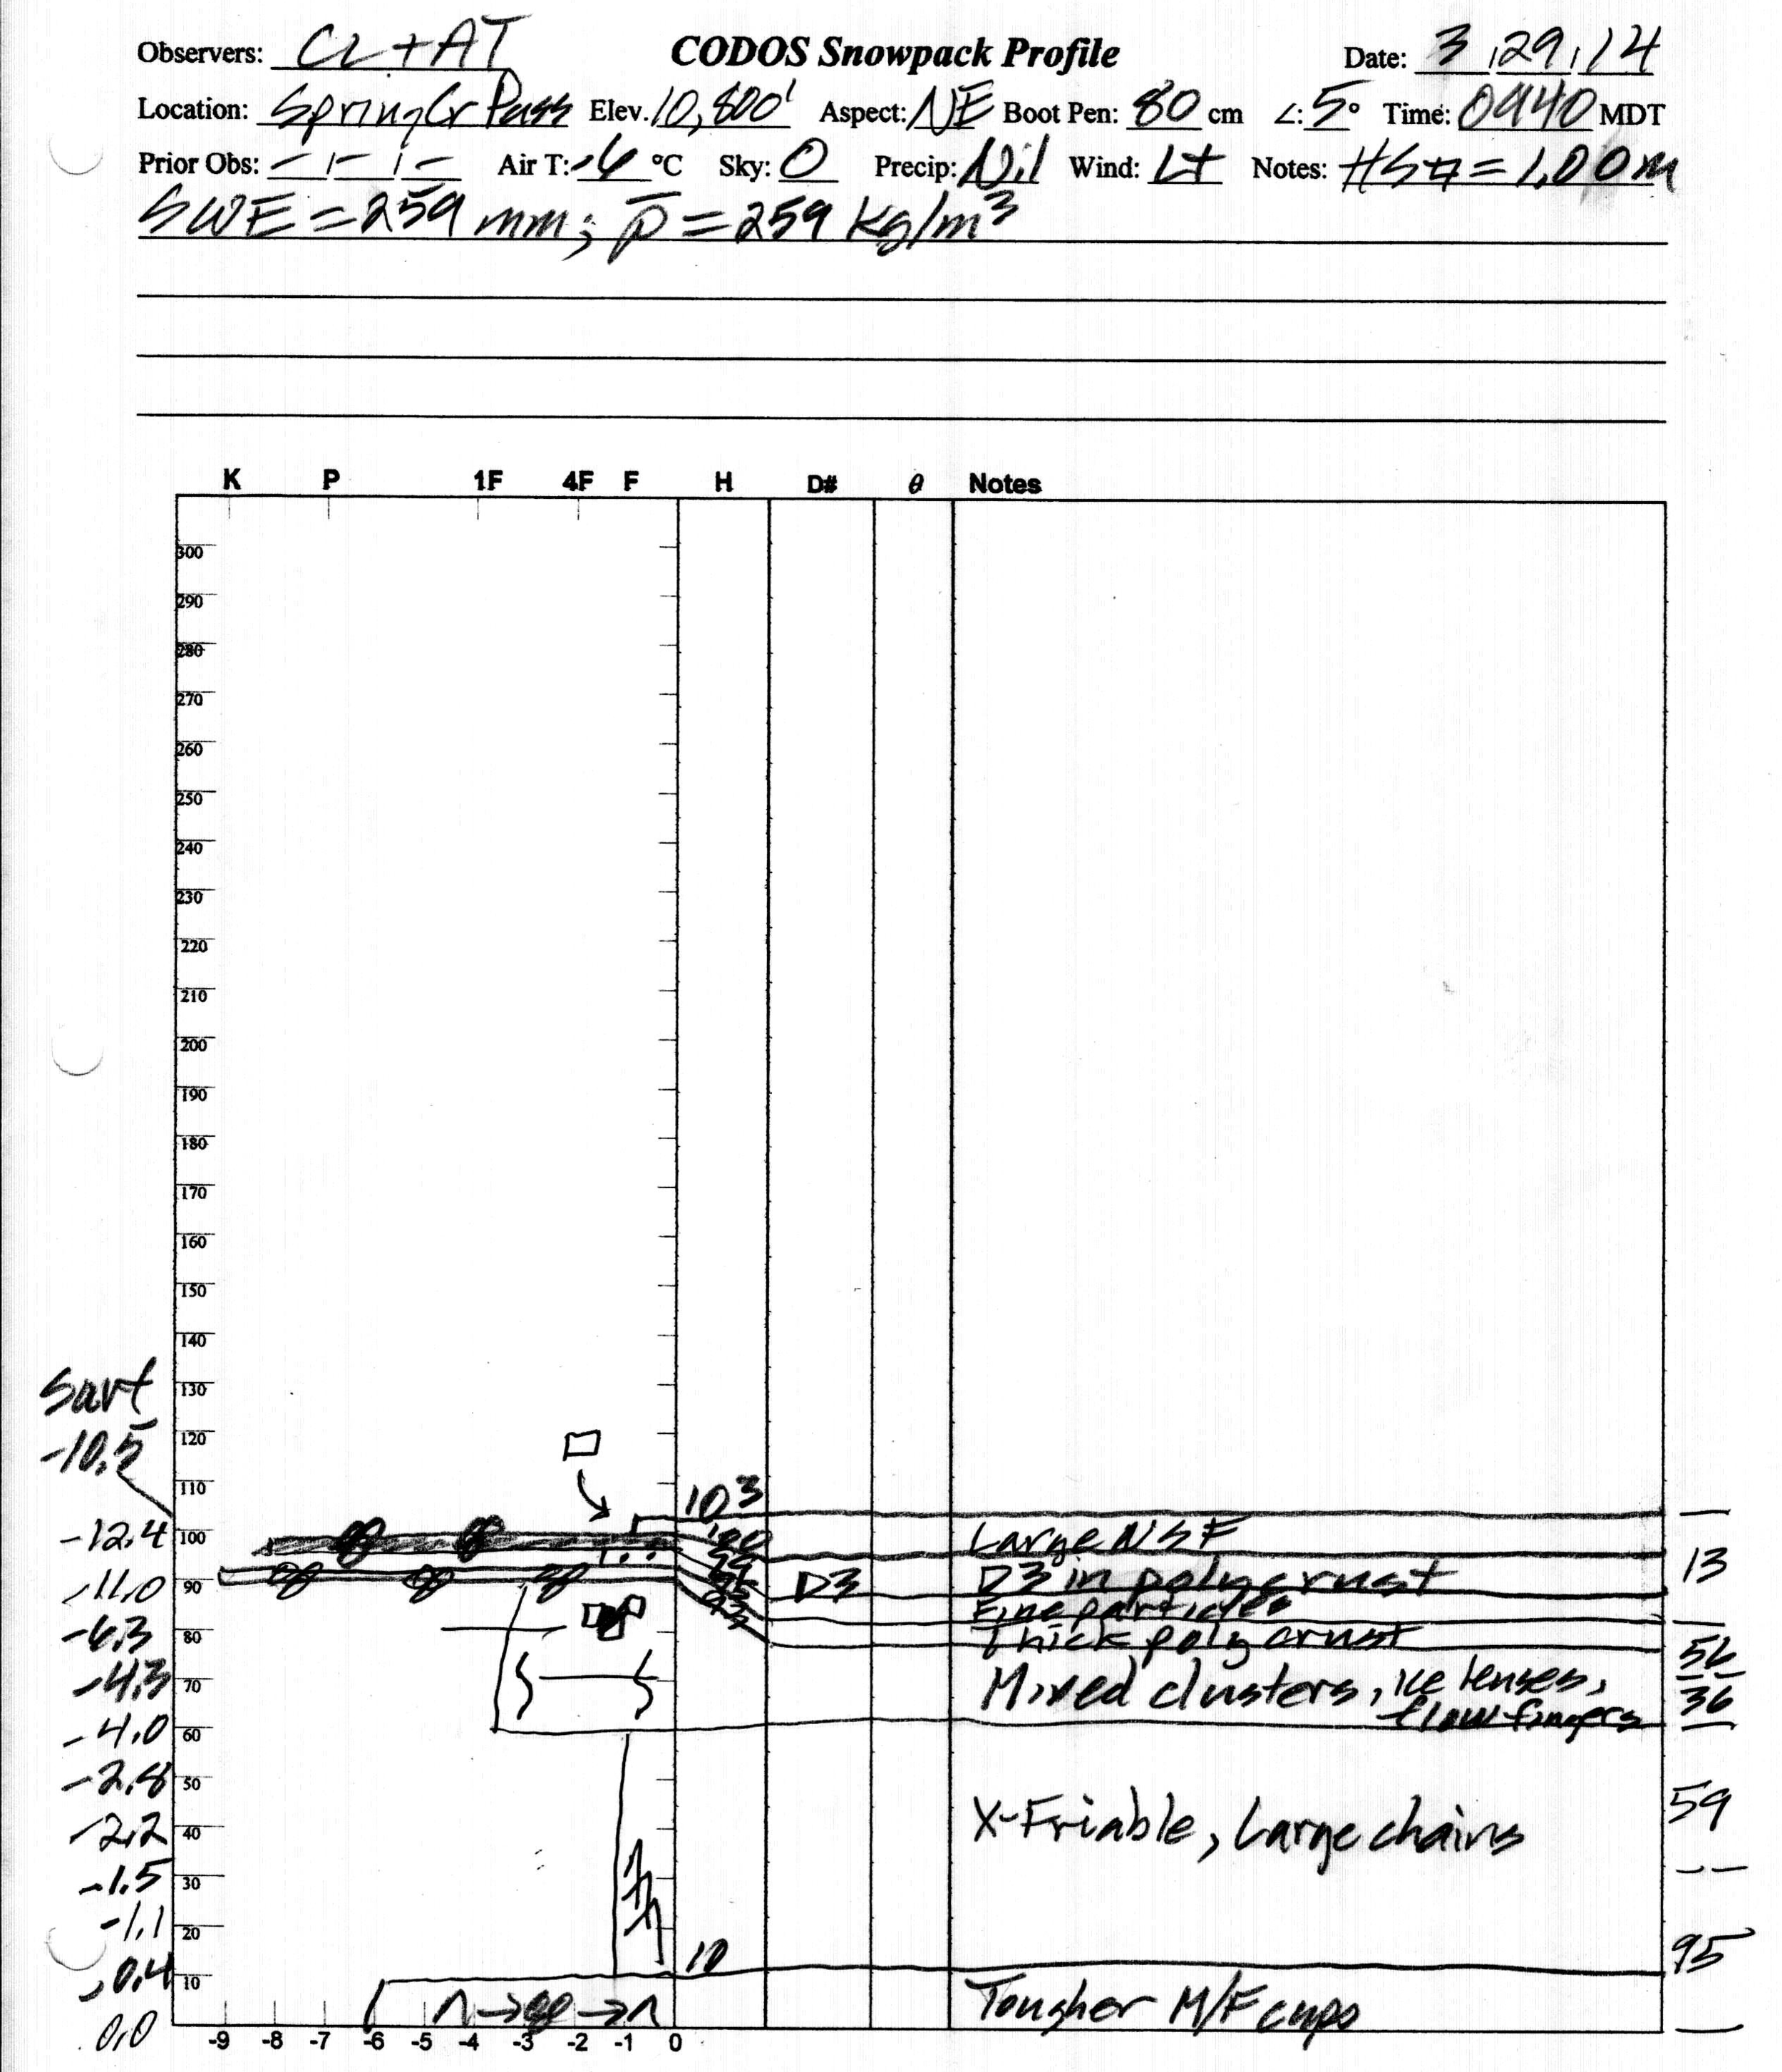 """At 103 cm (40.6""""), this was the deepest snow profile that the CODOS program has ever performed at Spring Creek Pass. Although the snowpack presented clear evidence of recent surface melting episodes and percolation of free water into the mid-pack, snowpack temperatures remained cool and the mean snow temperature was -4.7° C; none of the snowpack was moist (snowball snow) or wetter."""